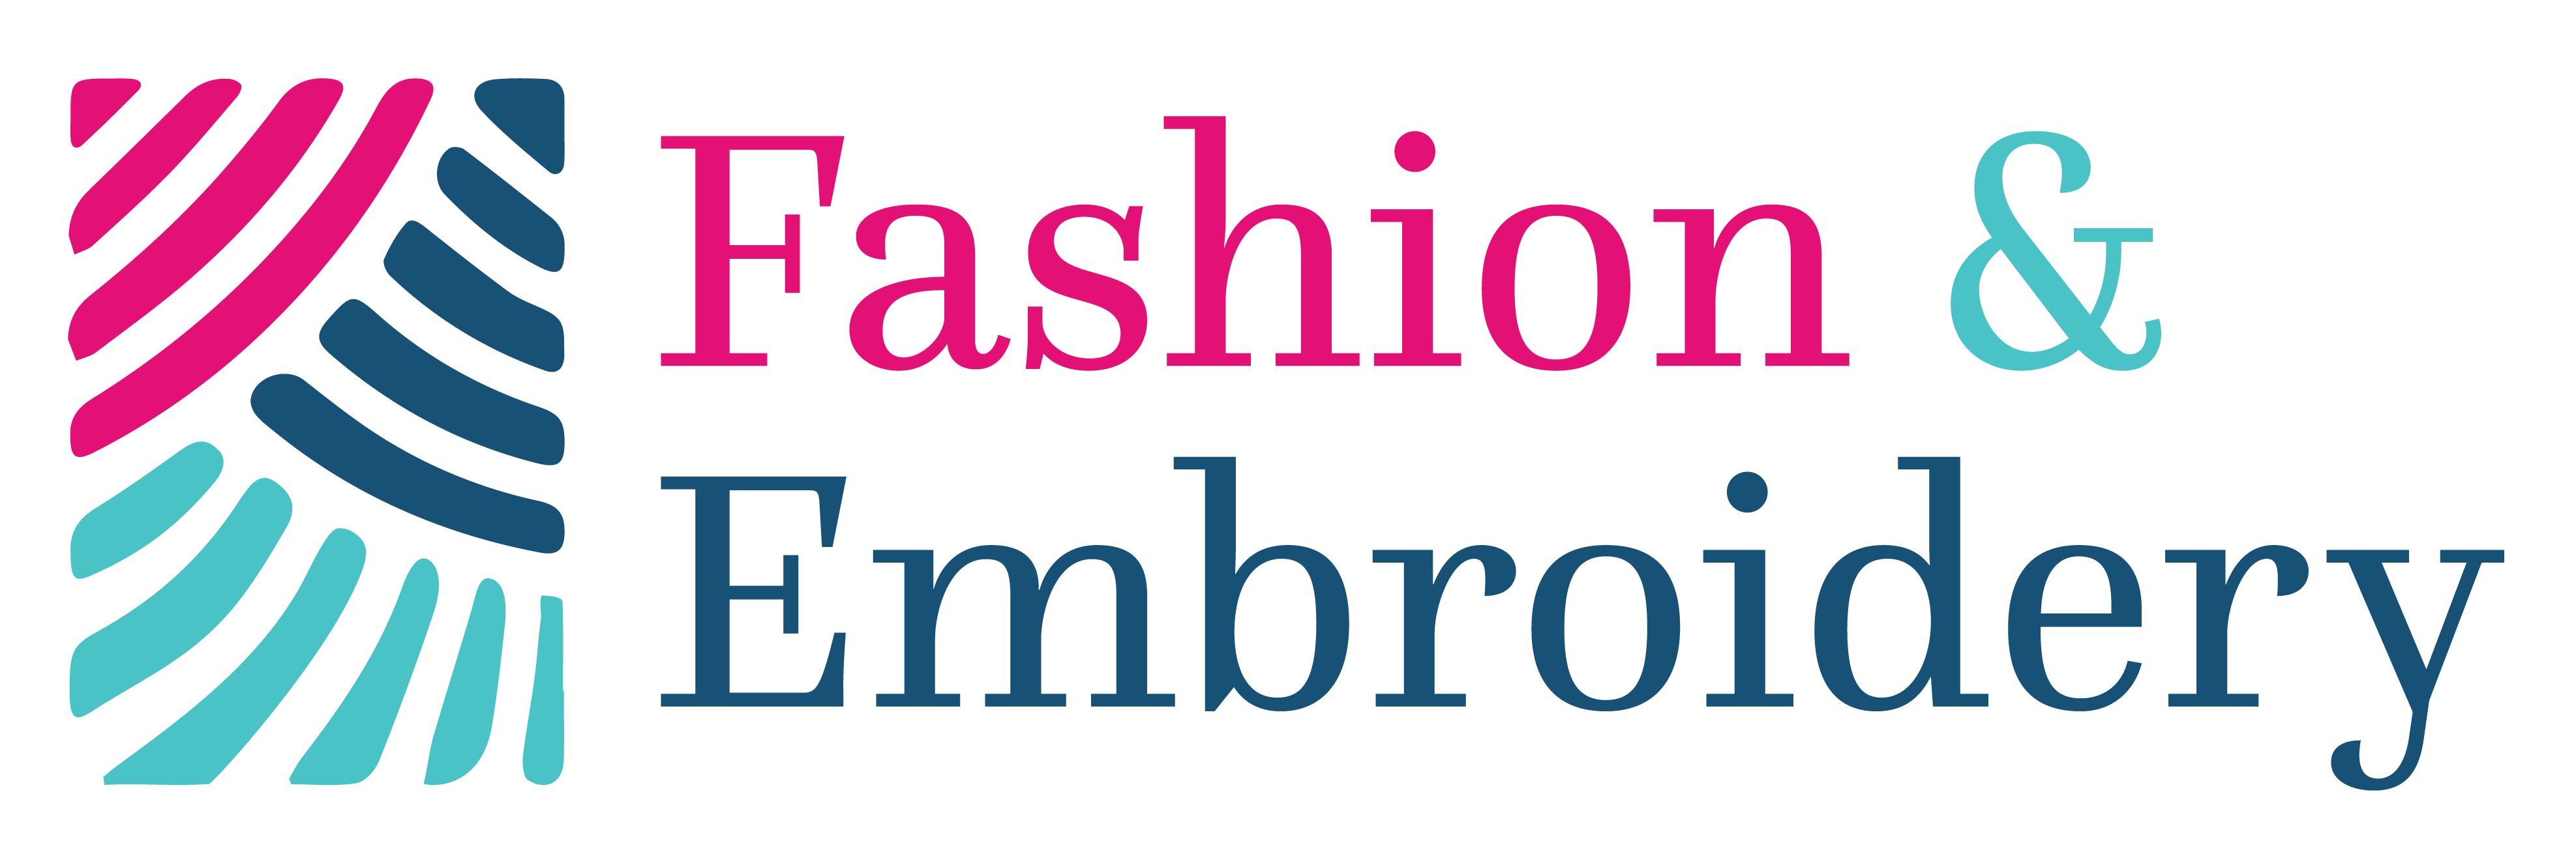 Fashion & Embroidery (Cancelled)